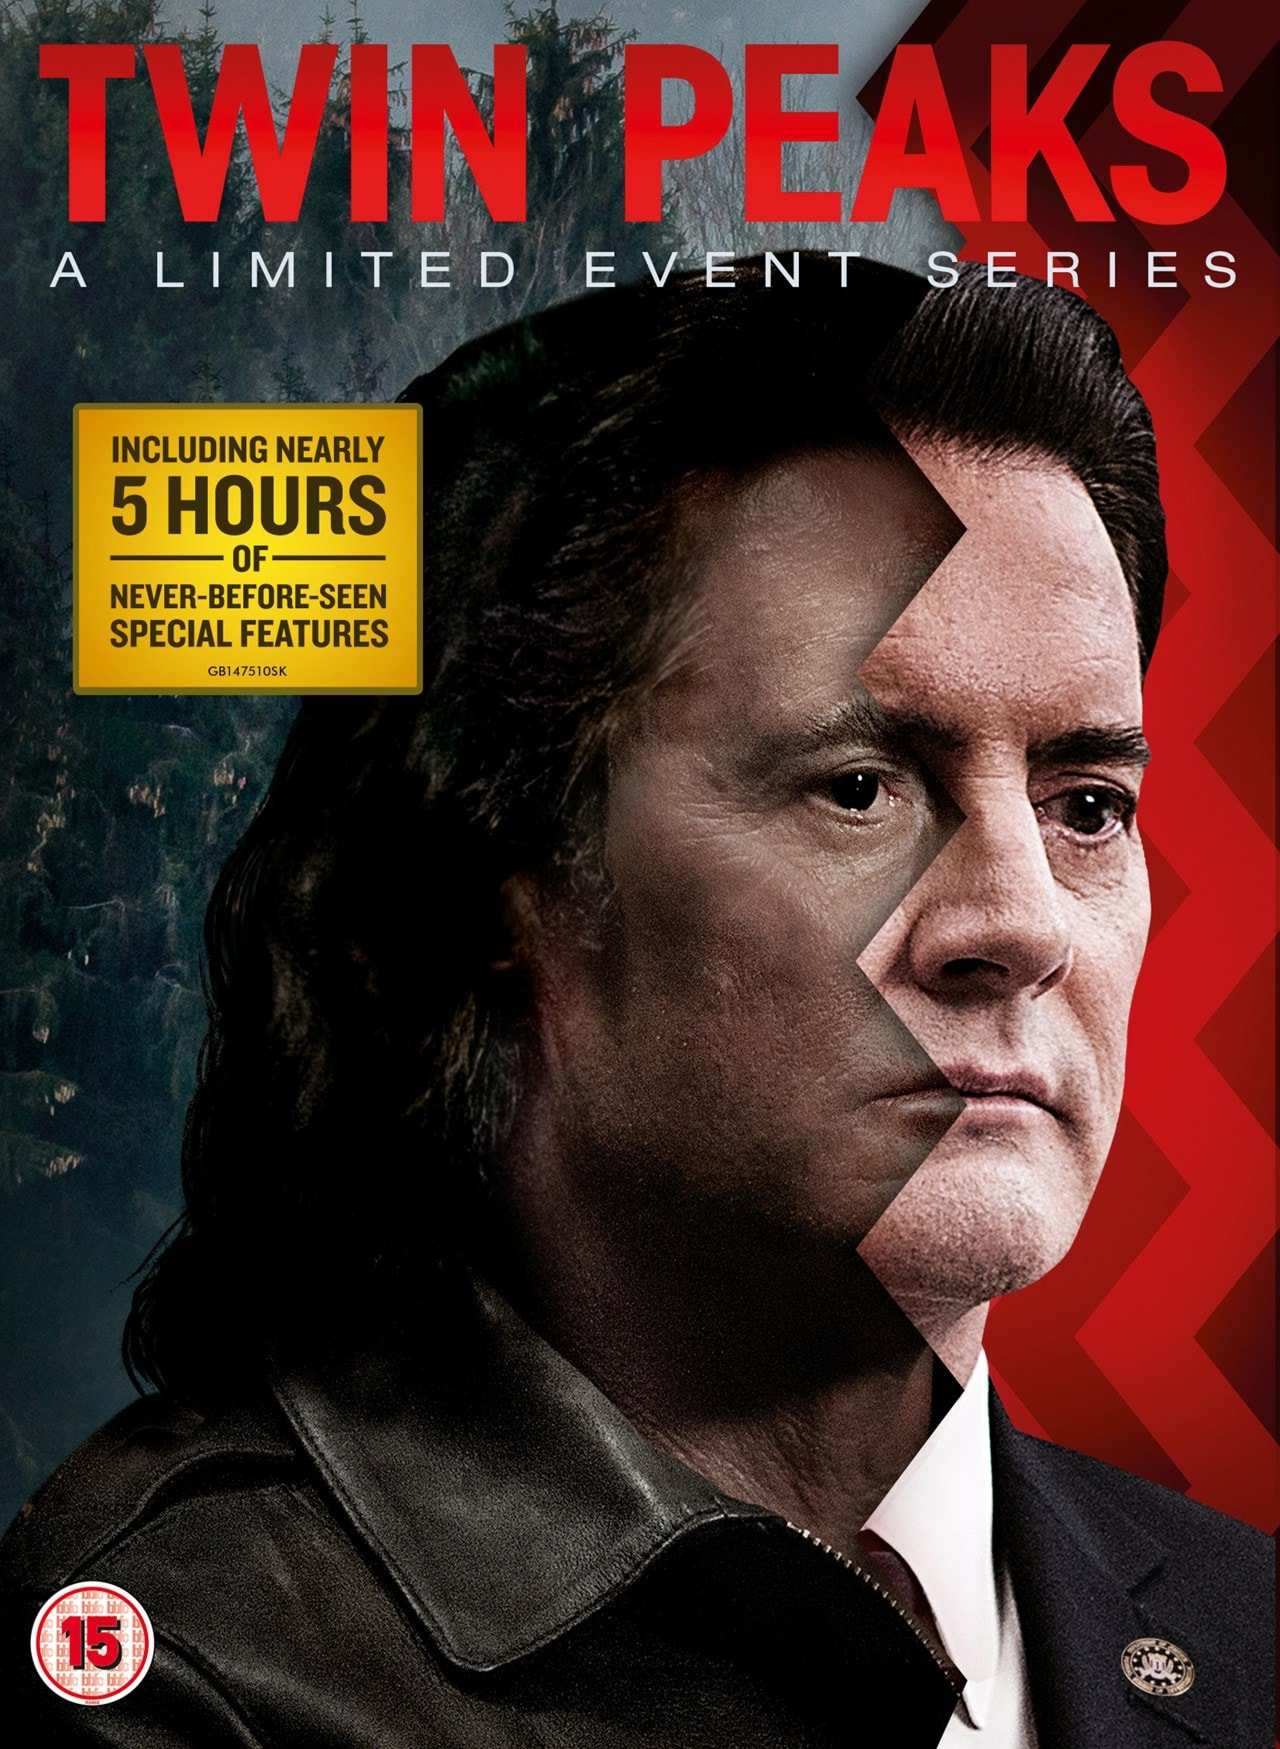 Twin Peaks: A Limited Event Series - 1